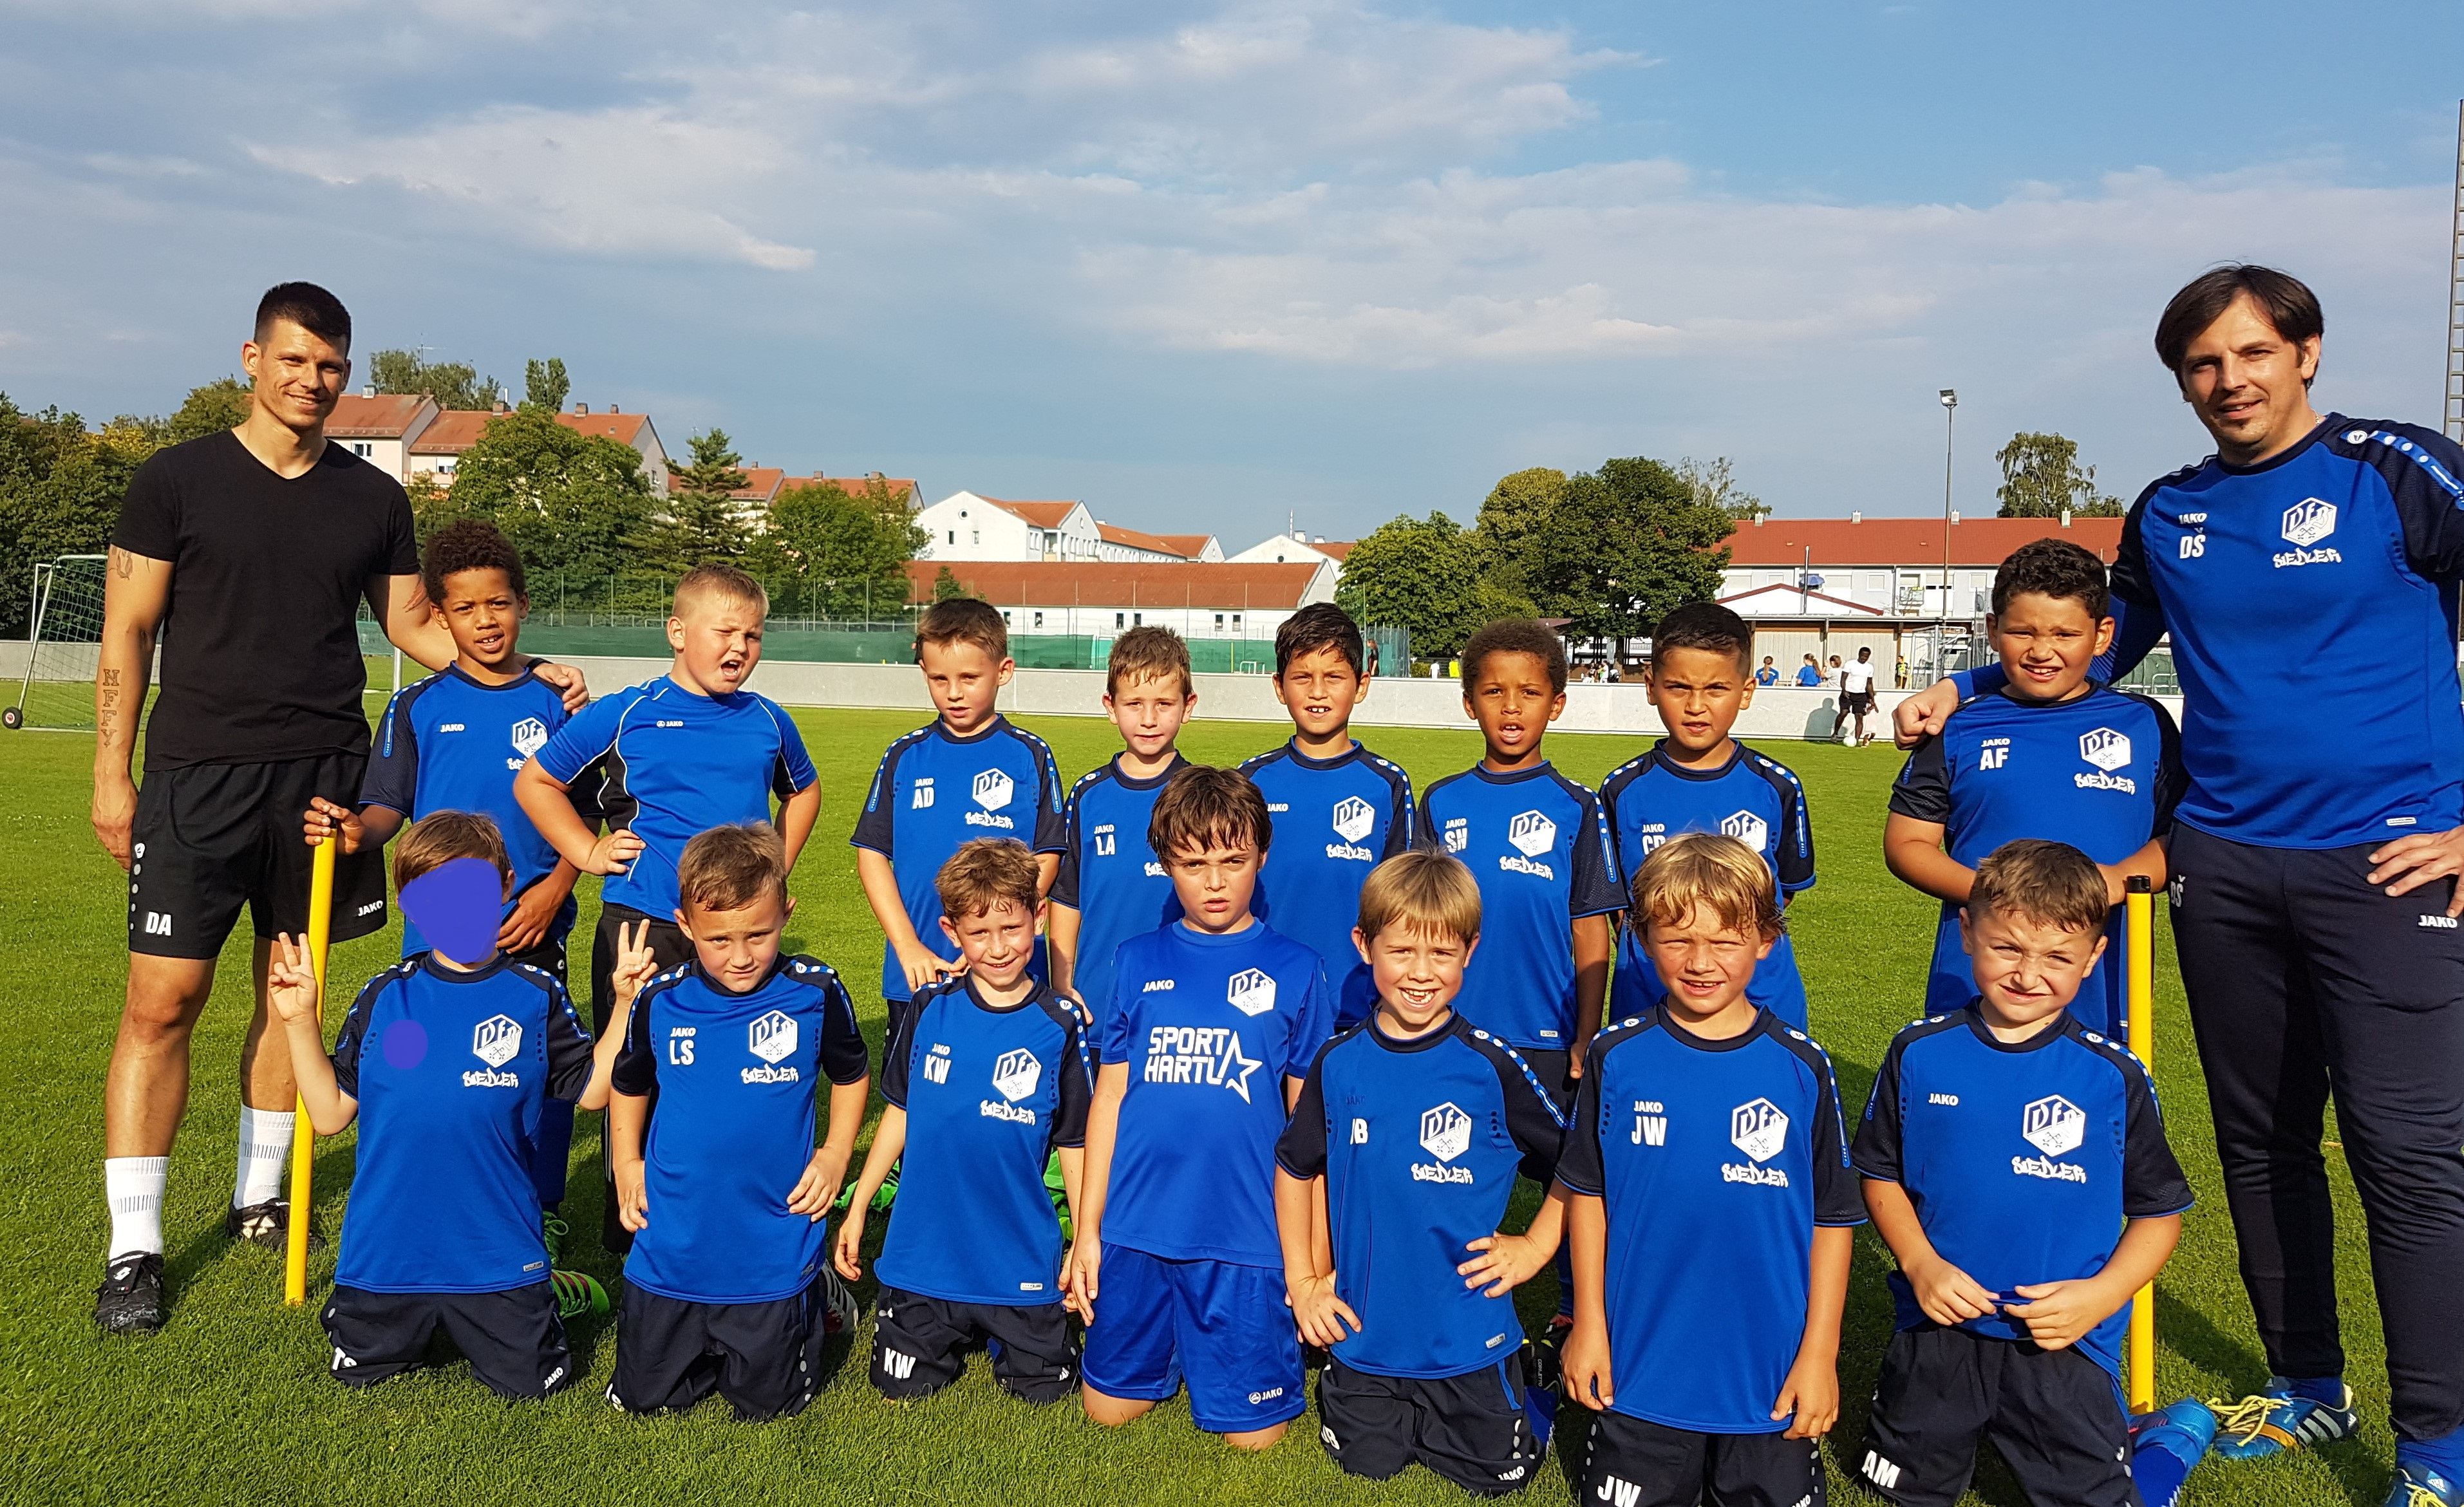 fjugend teamfoto